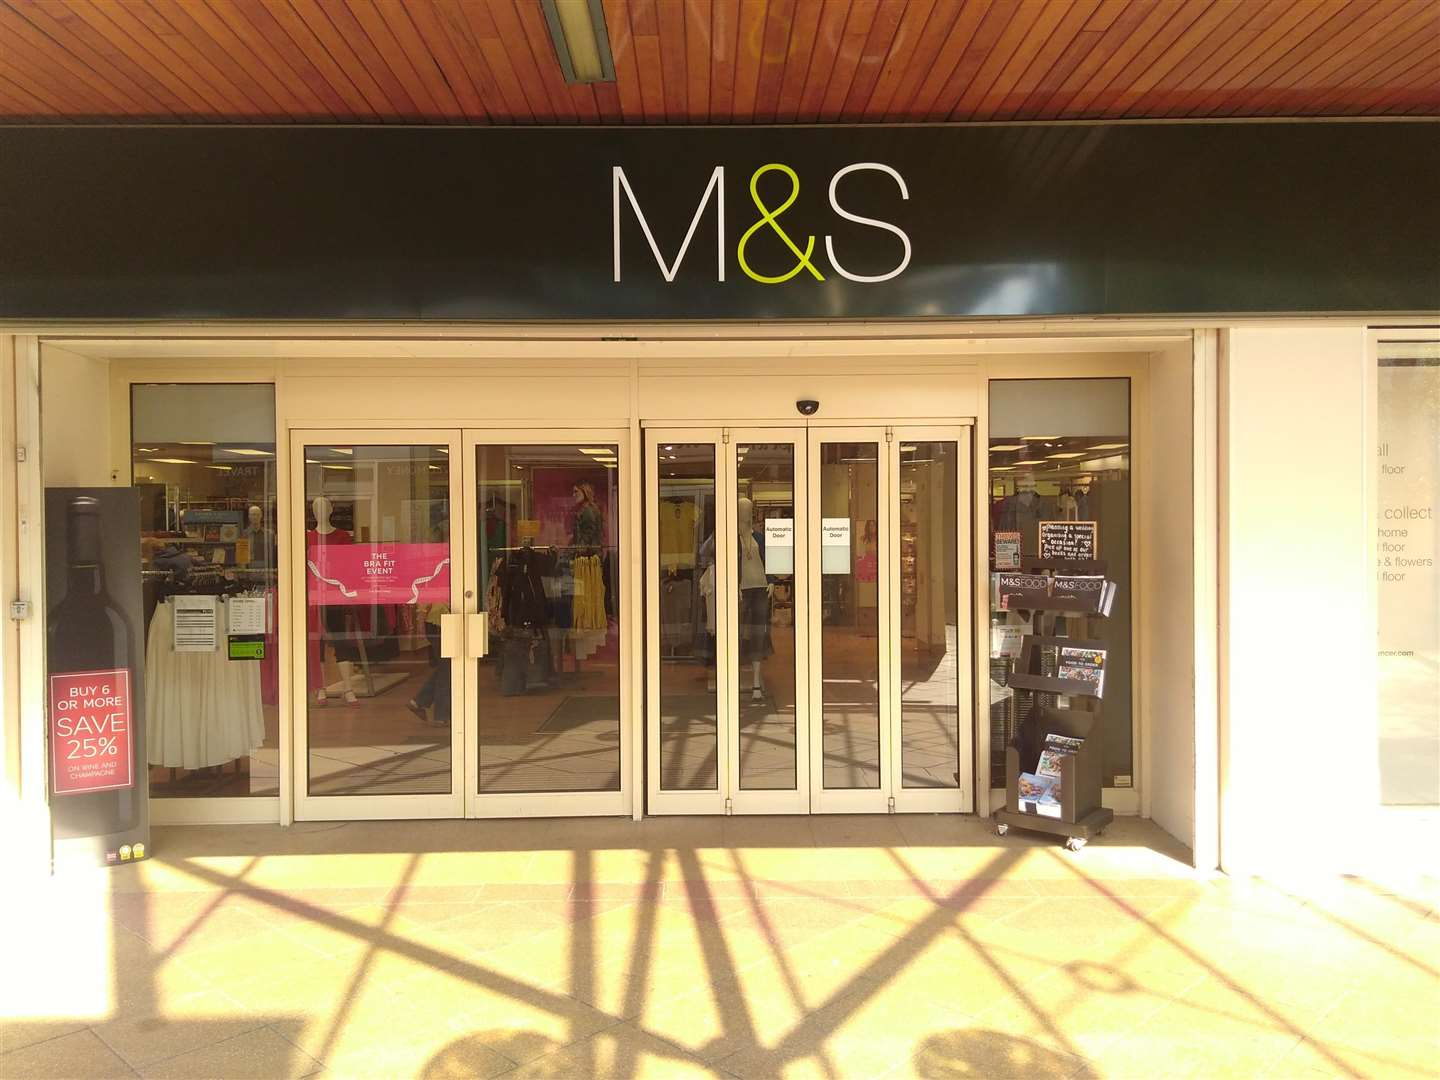 M&S has confirmed its Newmarket branch will be closing in August